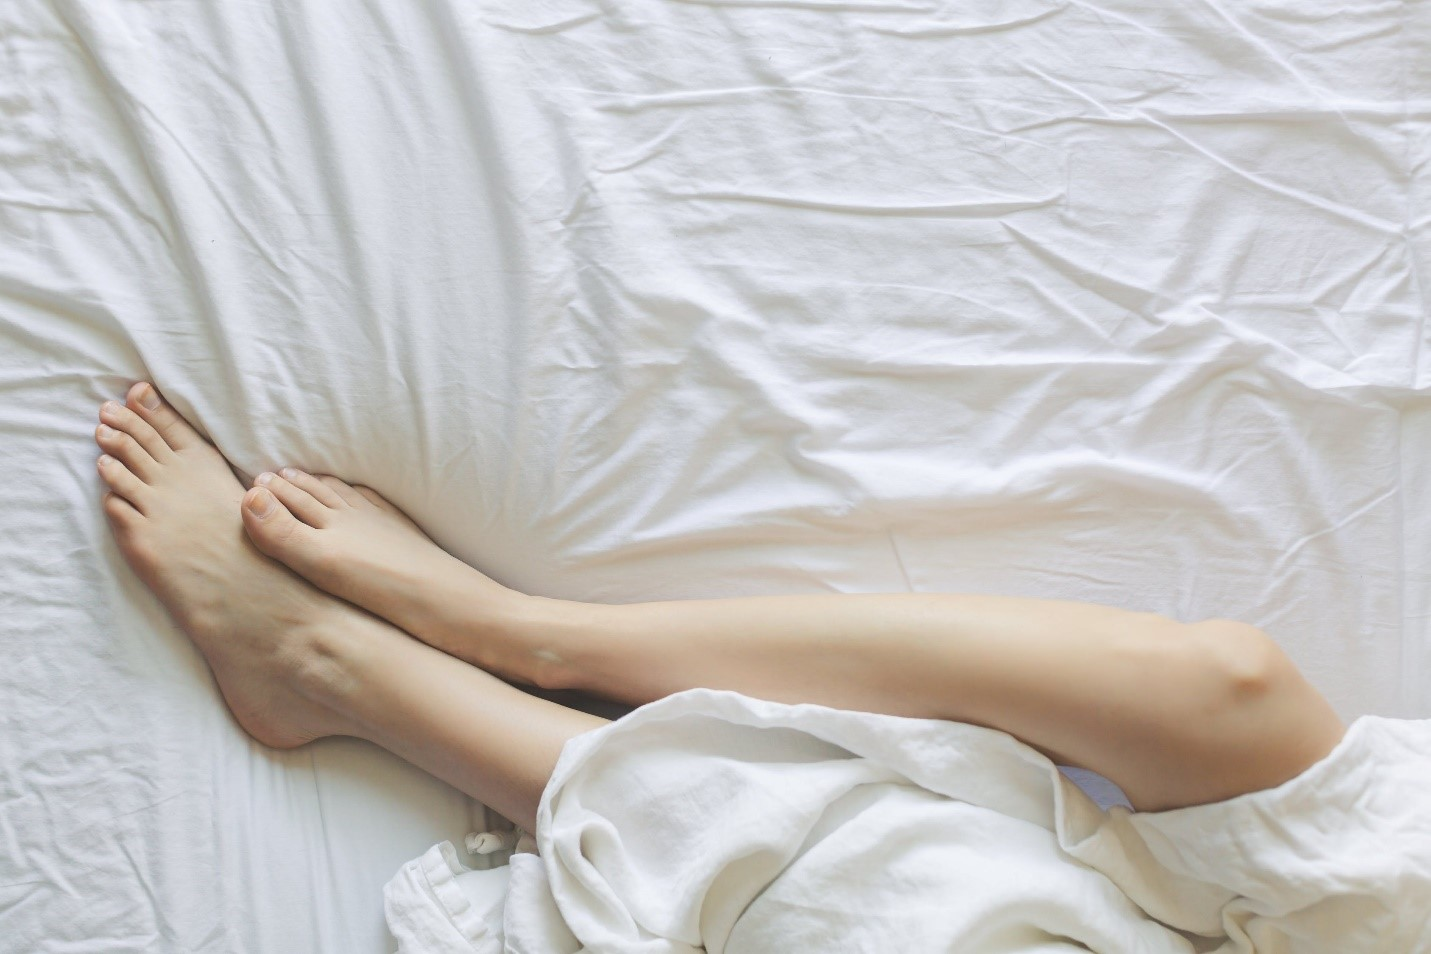 A woman with silky smooth hairless skin lying in bed